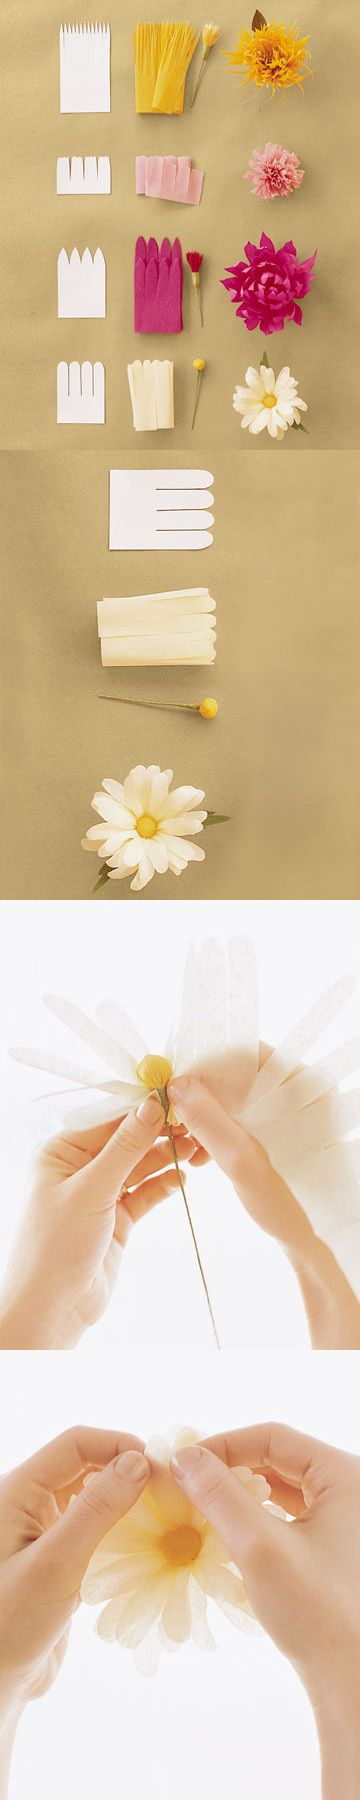 different paper flower tutorials